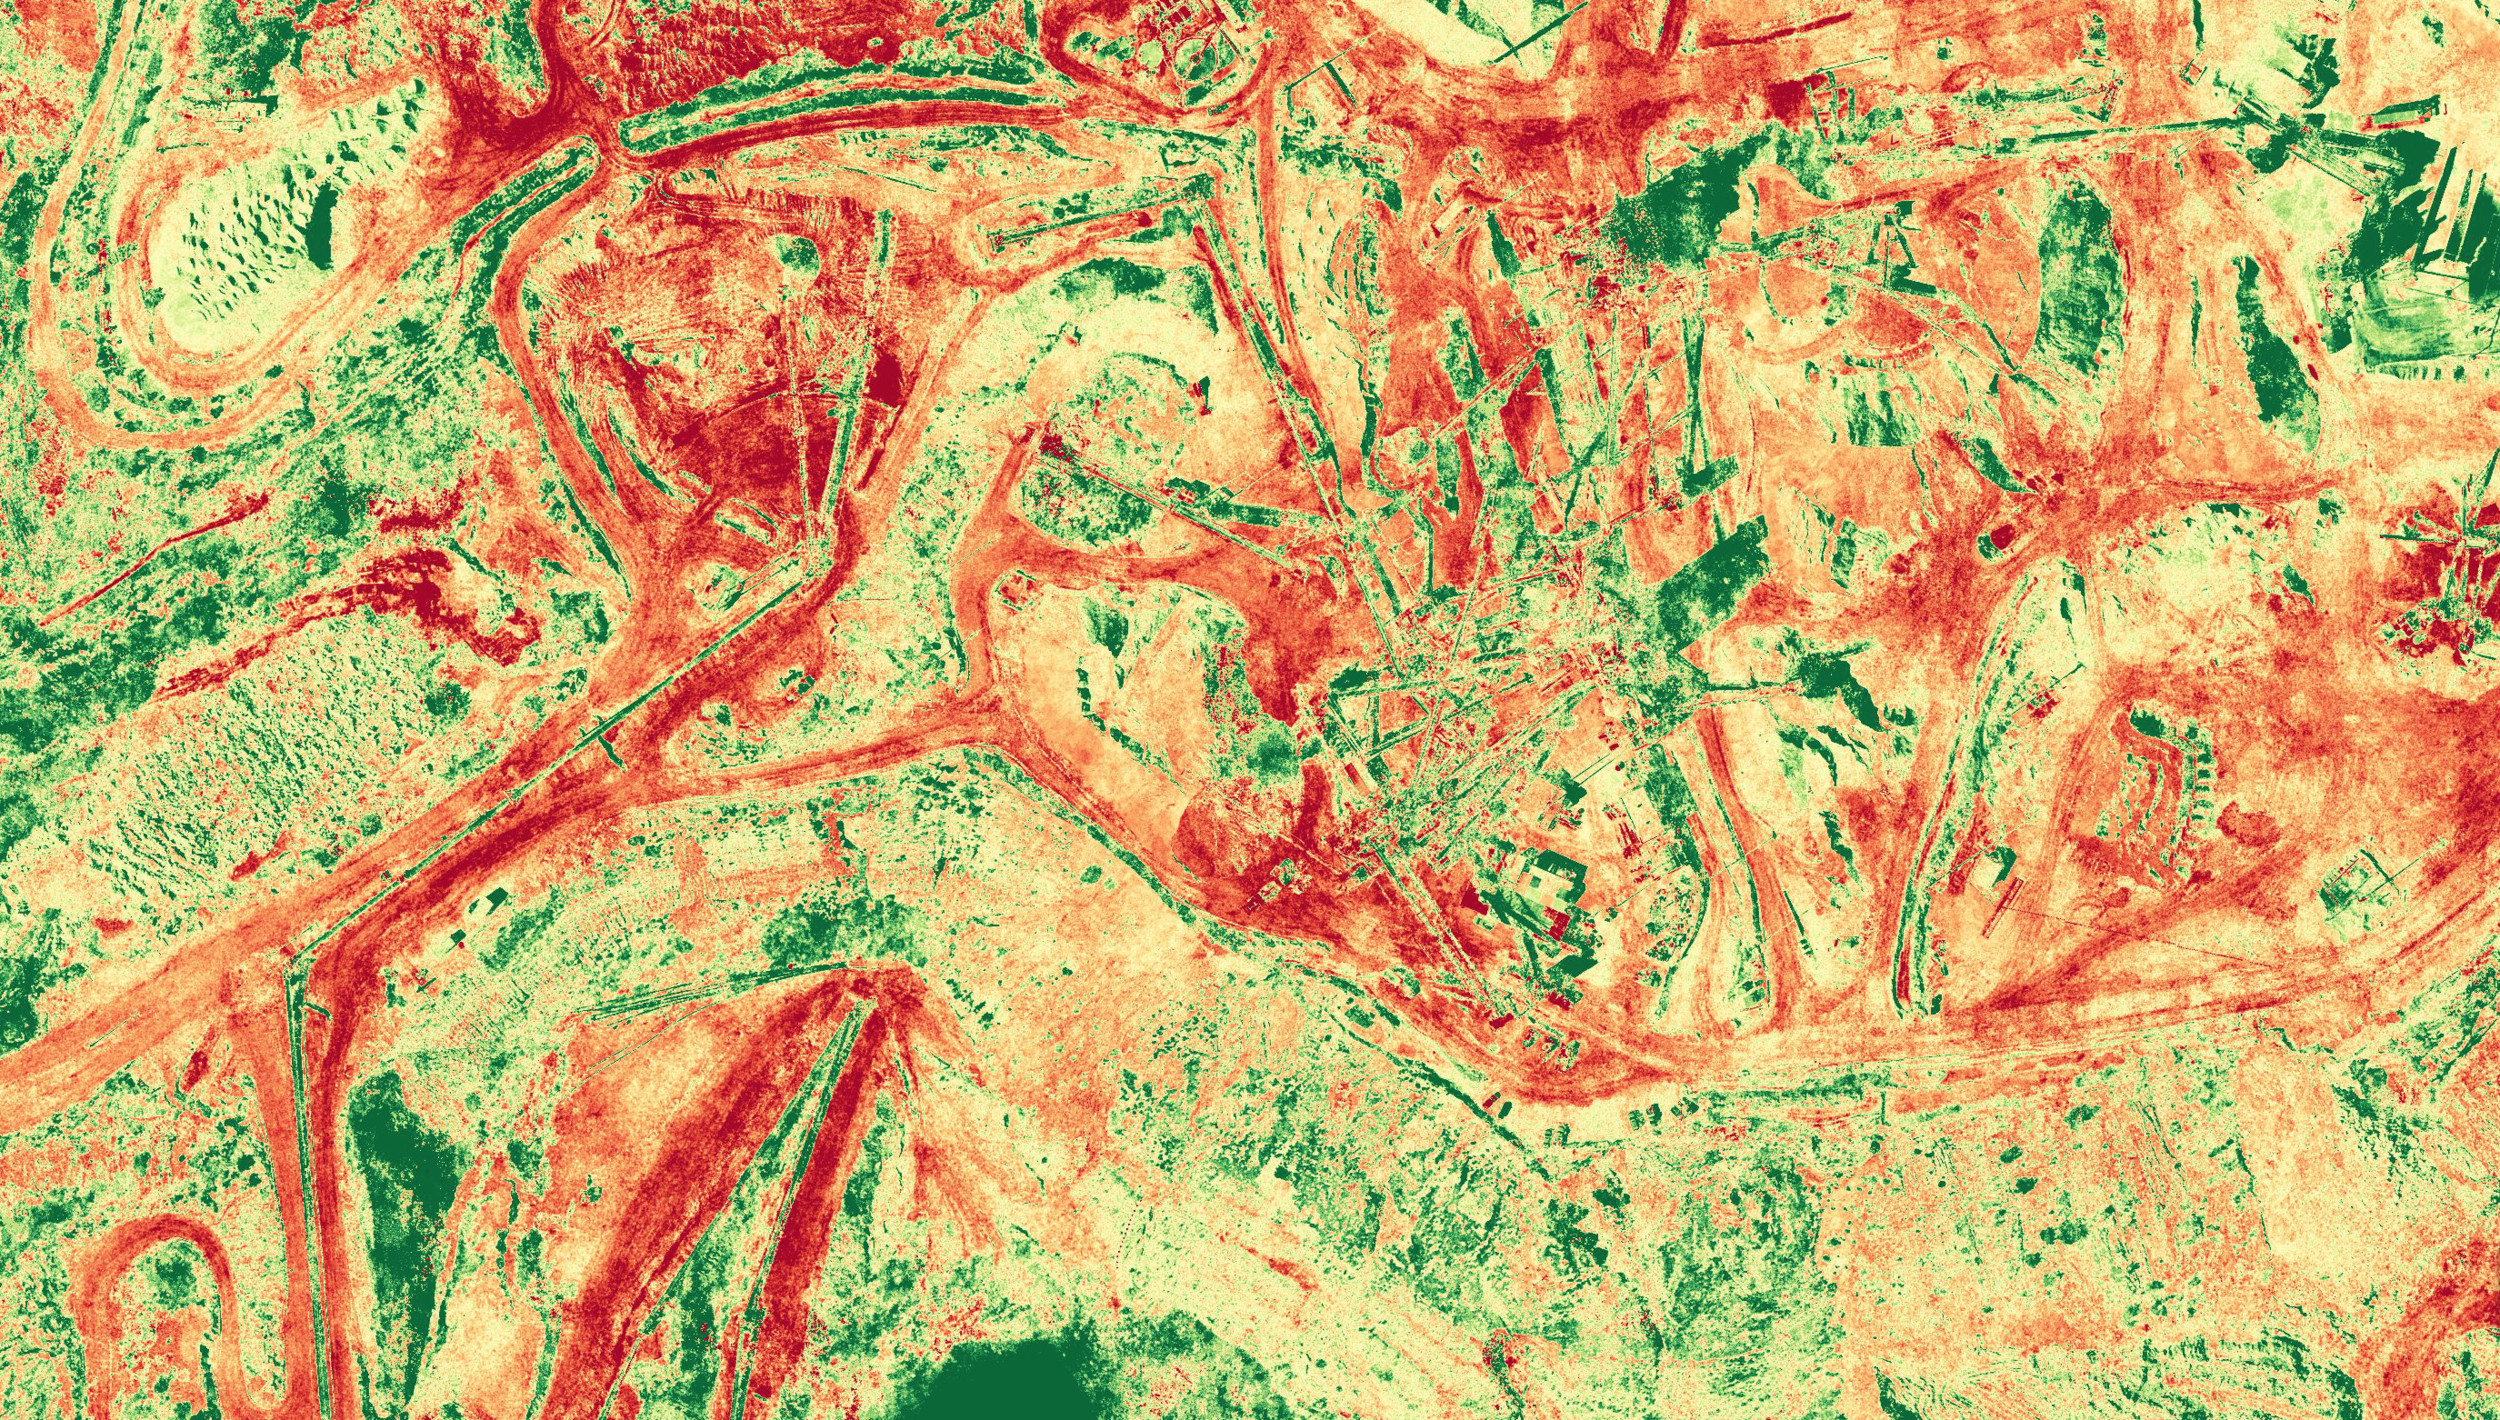 NDVI (normalized difference vegetation index) is calculated from the visible and near-infrared light reflected by vegetation. Healthy vegetation absorbs most of the visible light that hits it, and reflects a large portion of the near-infrared light. Unhealthy or sparse vegetation reflects more visible light and less near-infrared light